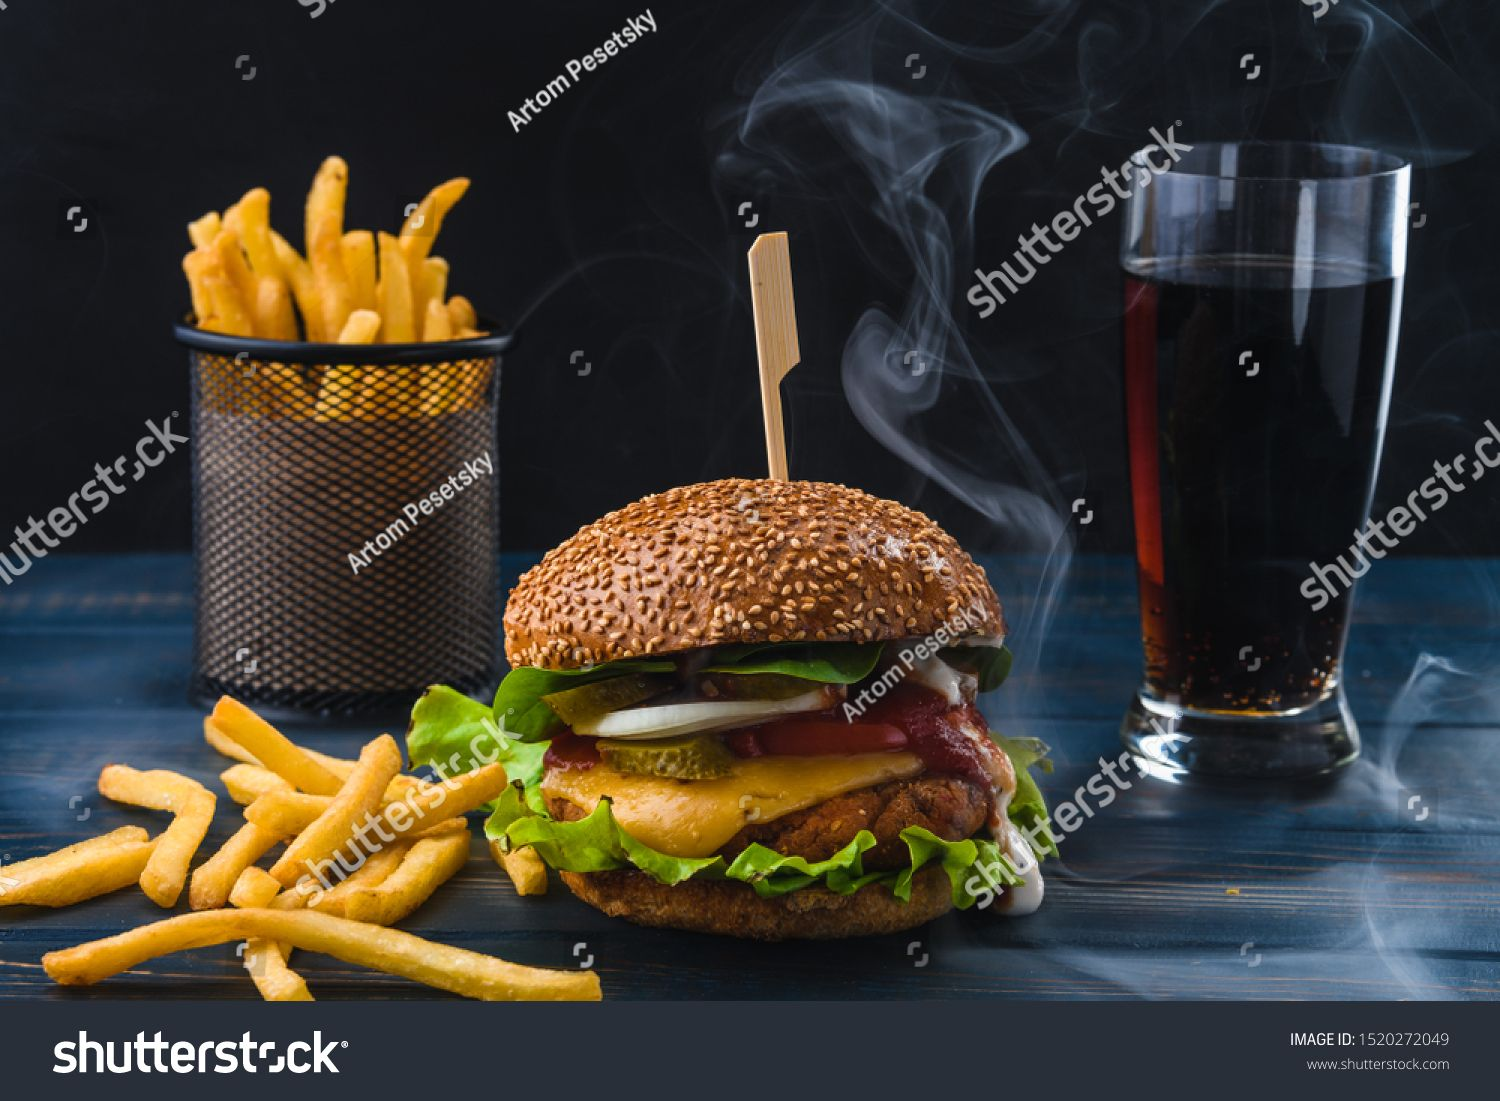 Vegetarian Burger With Fries And Drink On Wooden Table Sponsored Affiliate Fries Burger Vegetarian Table Vegetarian Burger Burger Burger And Fries